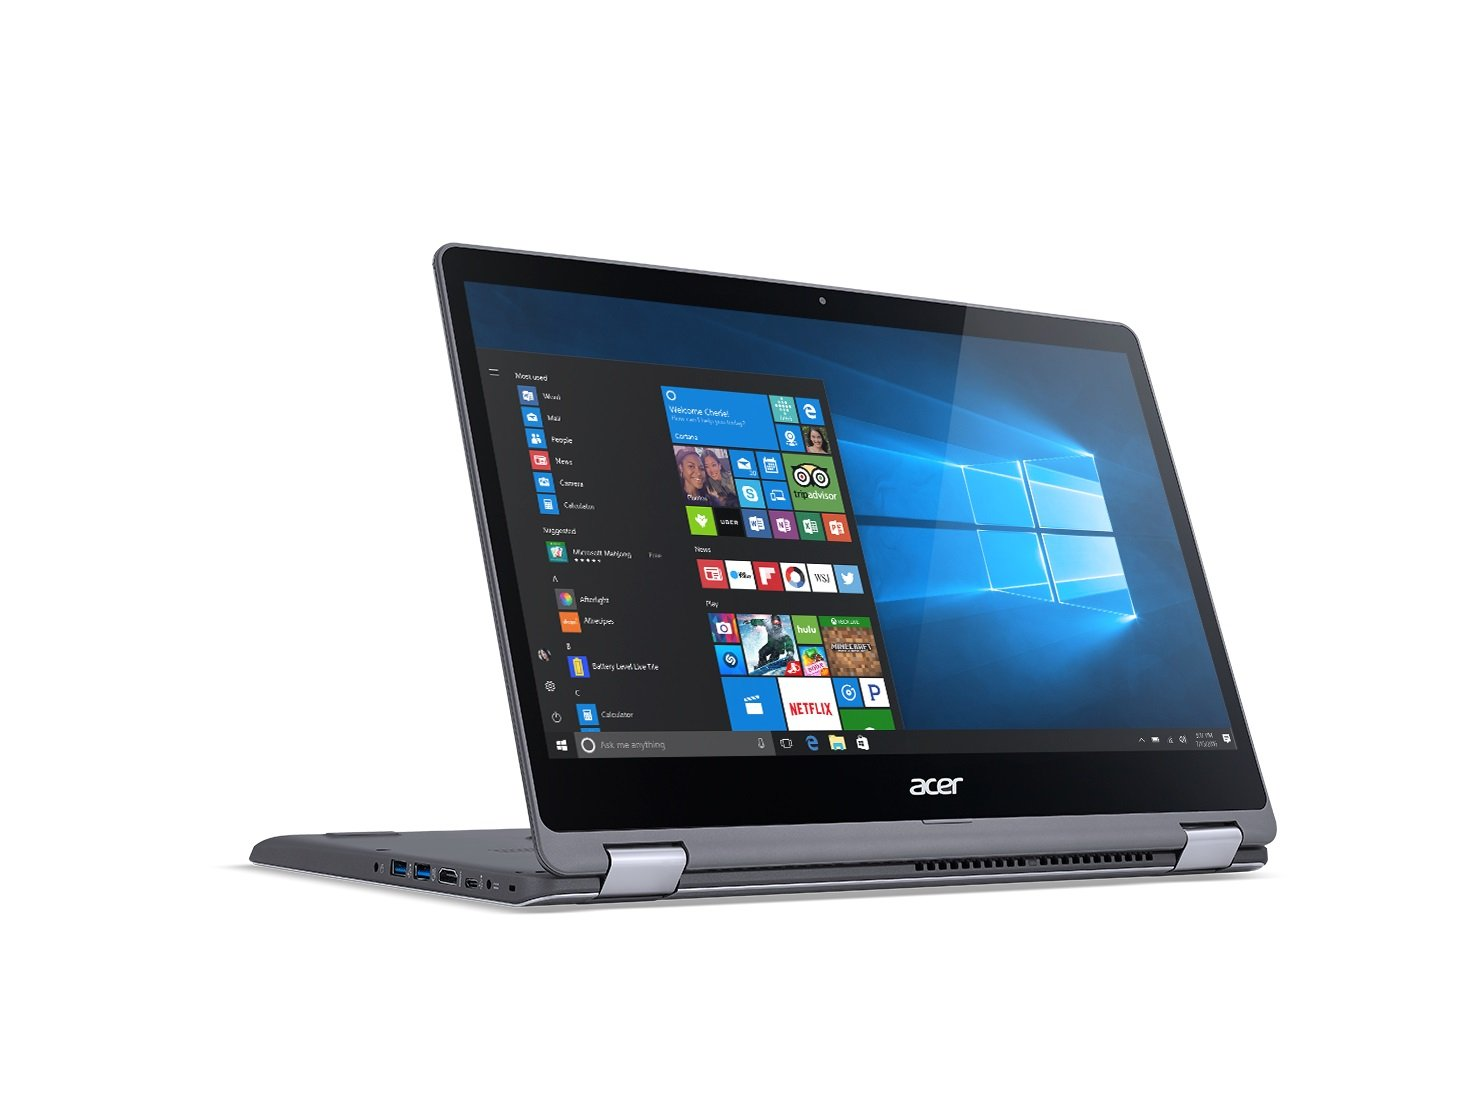 Acer Aspire 7520 Realtek HD Audio 64 BIT